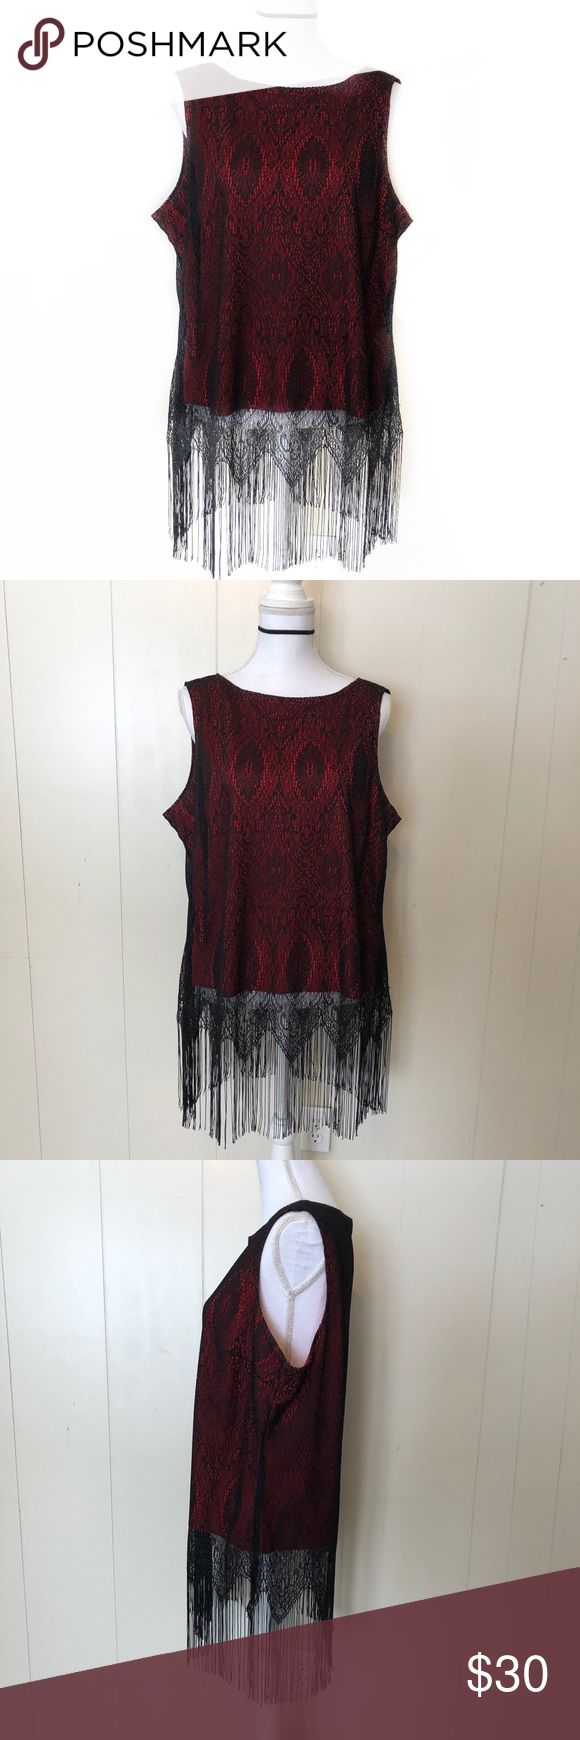 TORRID Red & Black Fringe Tank This gorgeous TORRID Red & Black Fringe Tank will break hearts and is perfect for a night in the town!   EXCELLENT CONDITION NO DEFECTS PLEASE ASK FOR MEASUREMENTS BEFORE PURCHASING torrid Tops Tank Tops